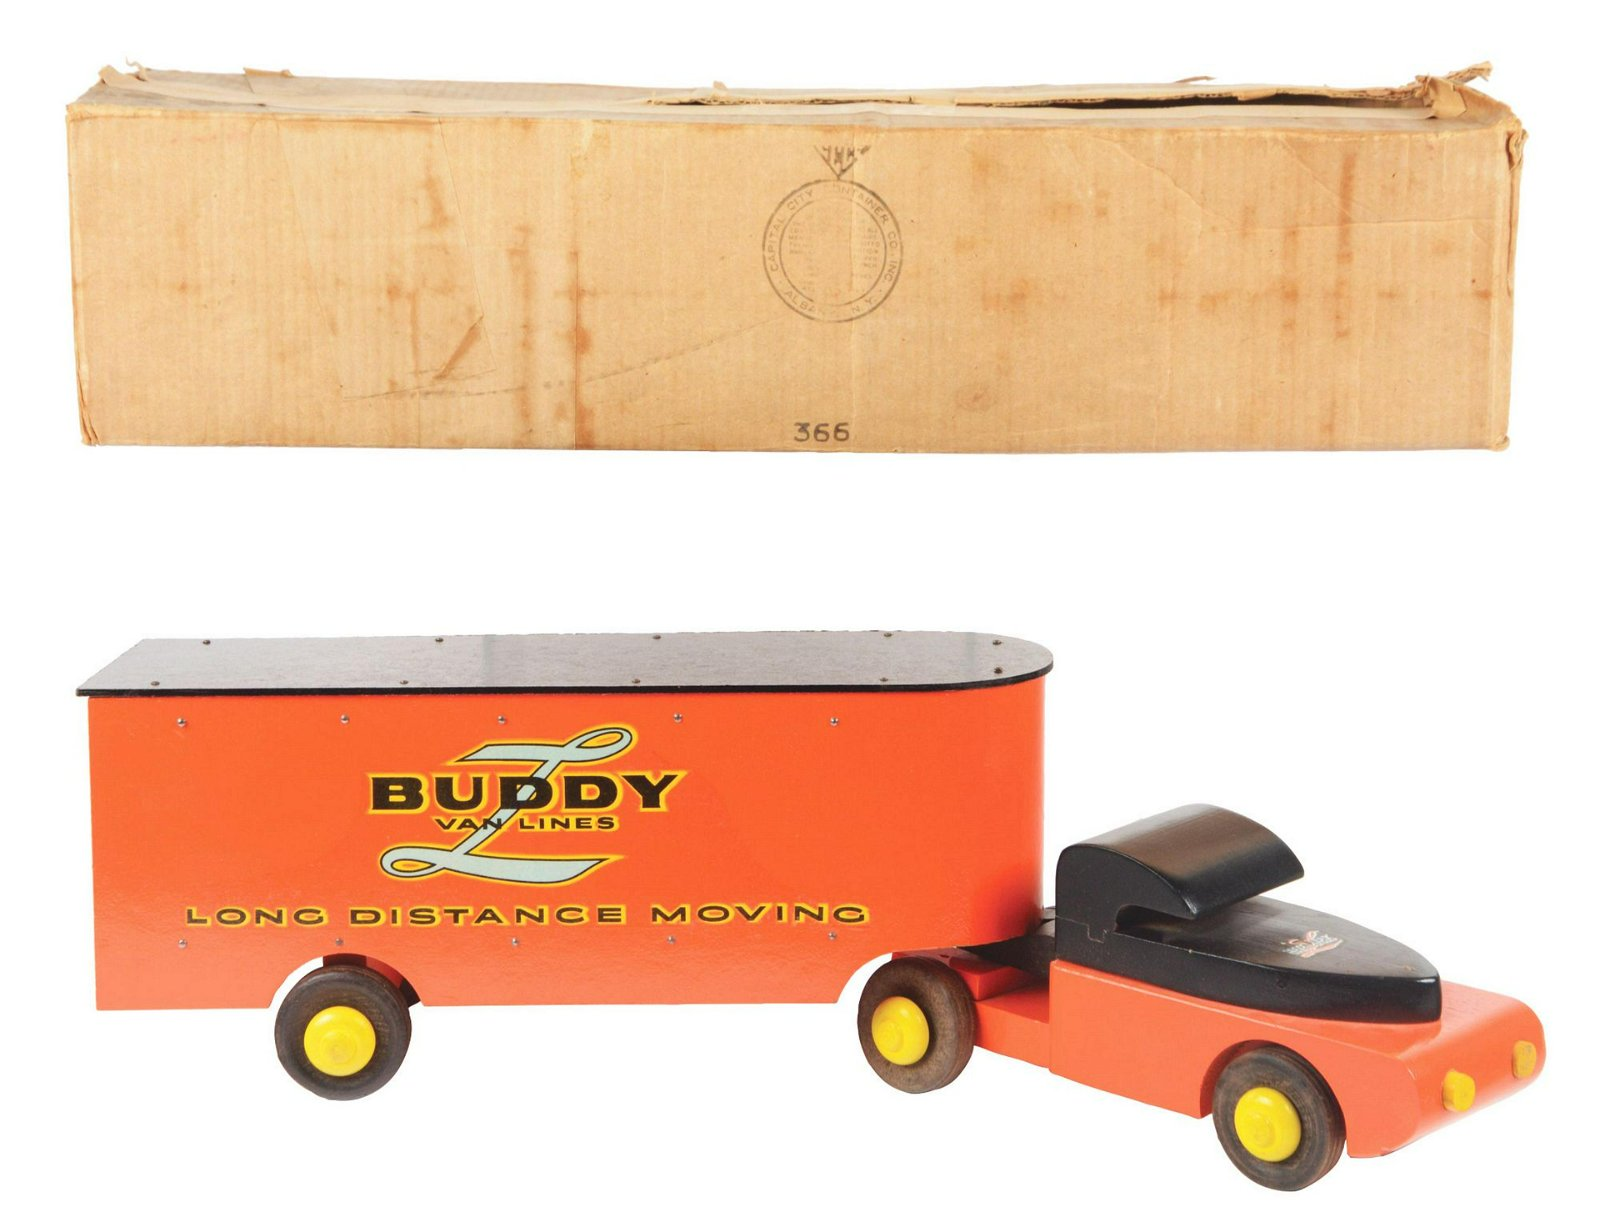 Buddy L Long Distance Moving Truck with Box.